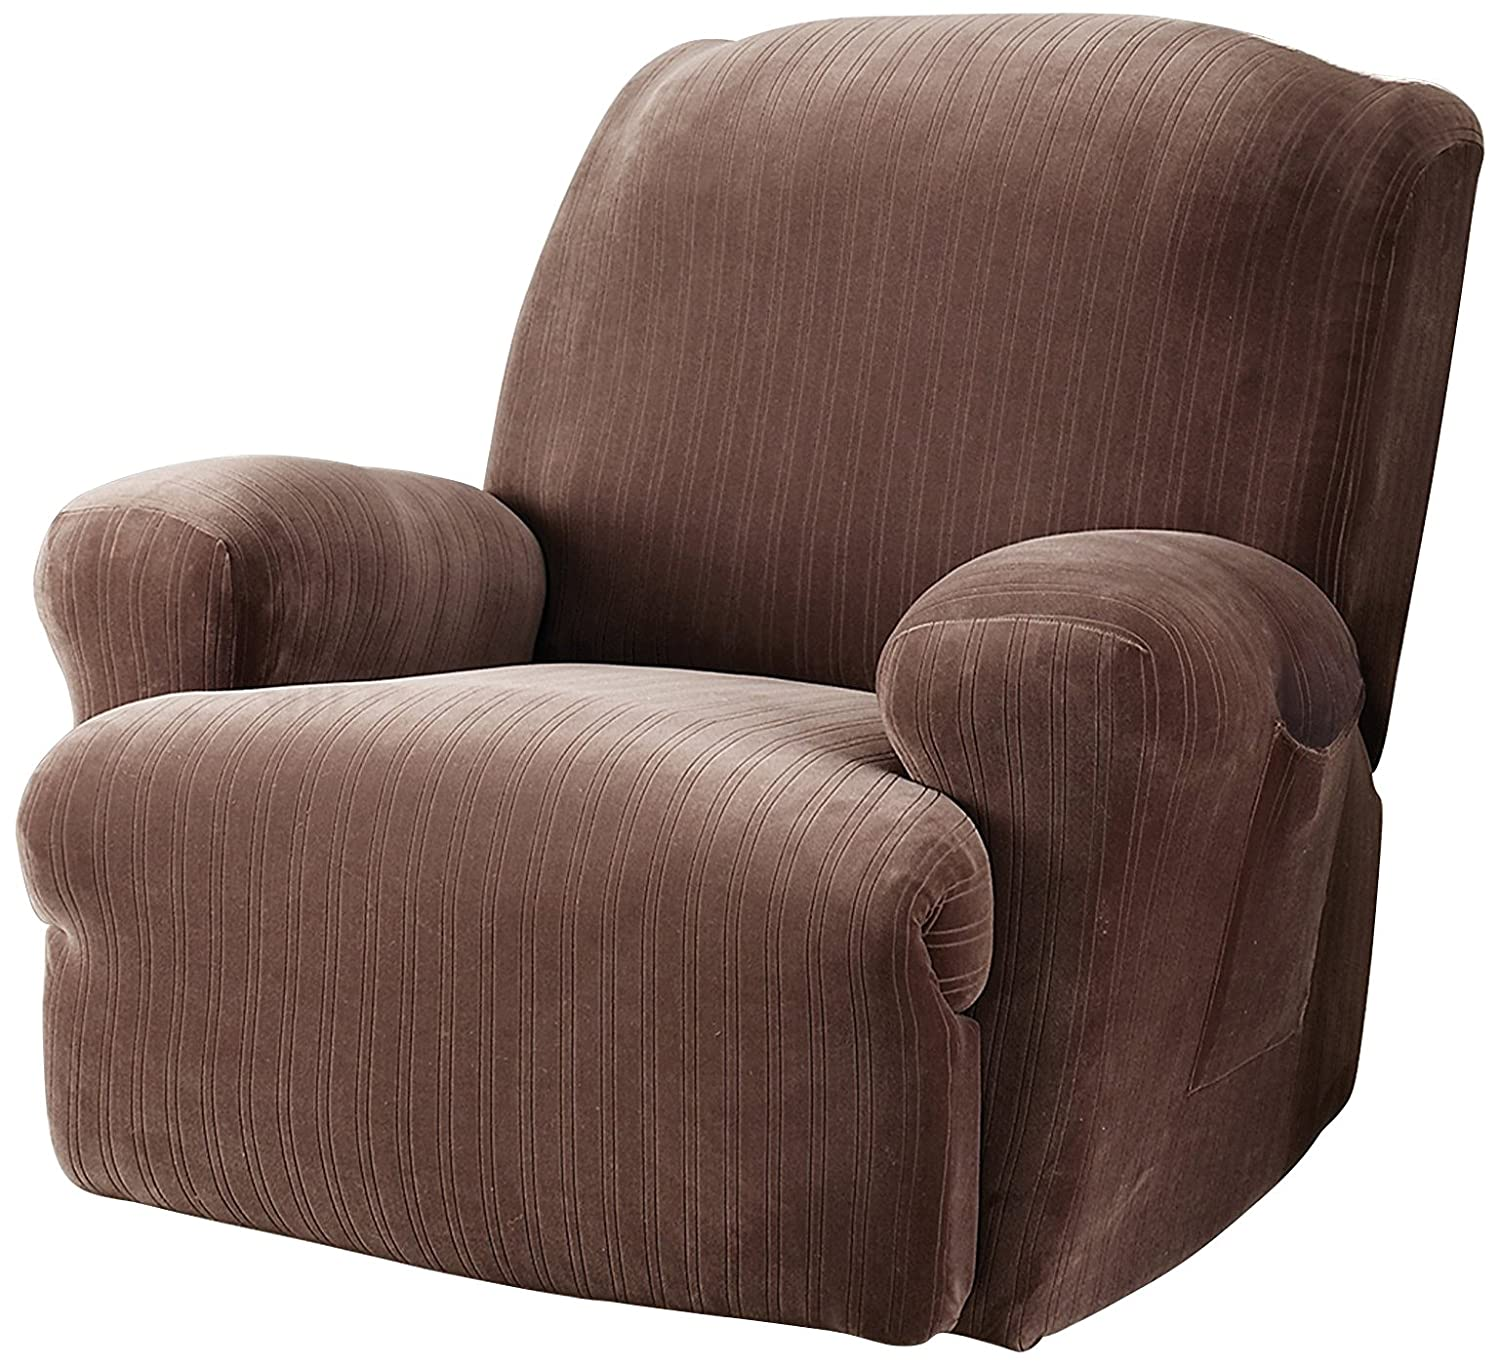 pin recliners products slipcover for and recliner slipcovers